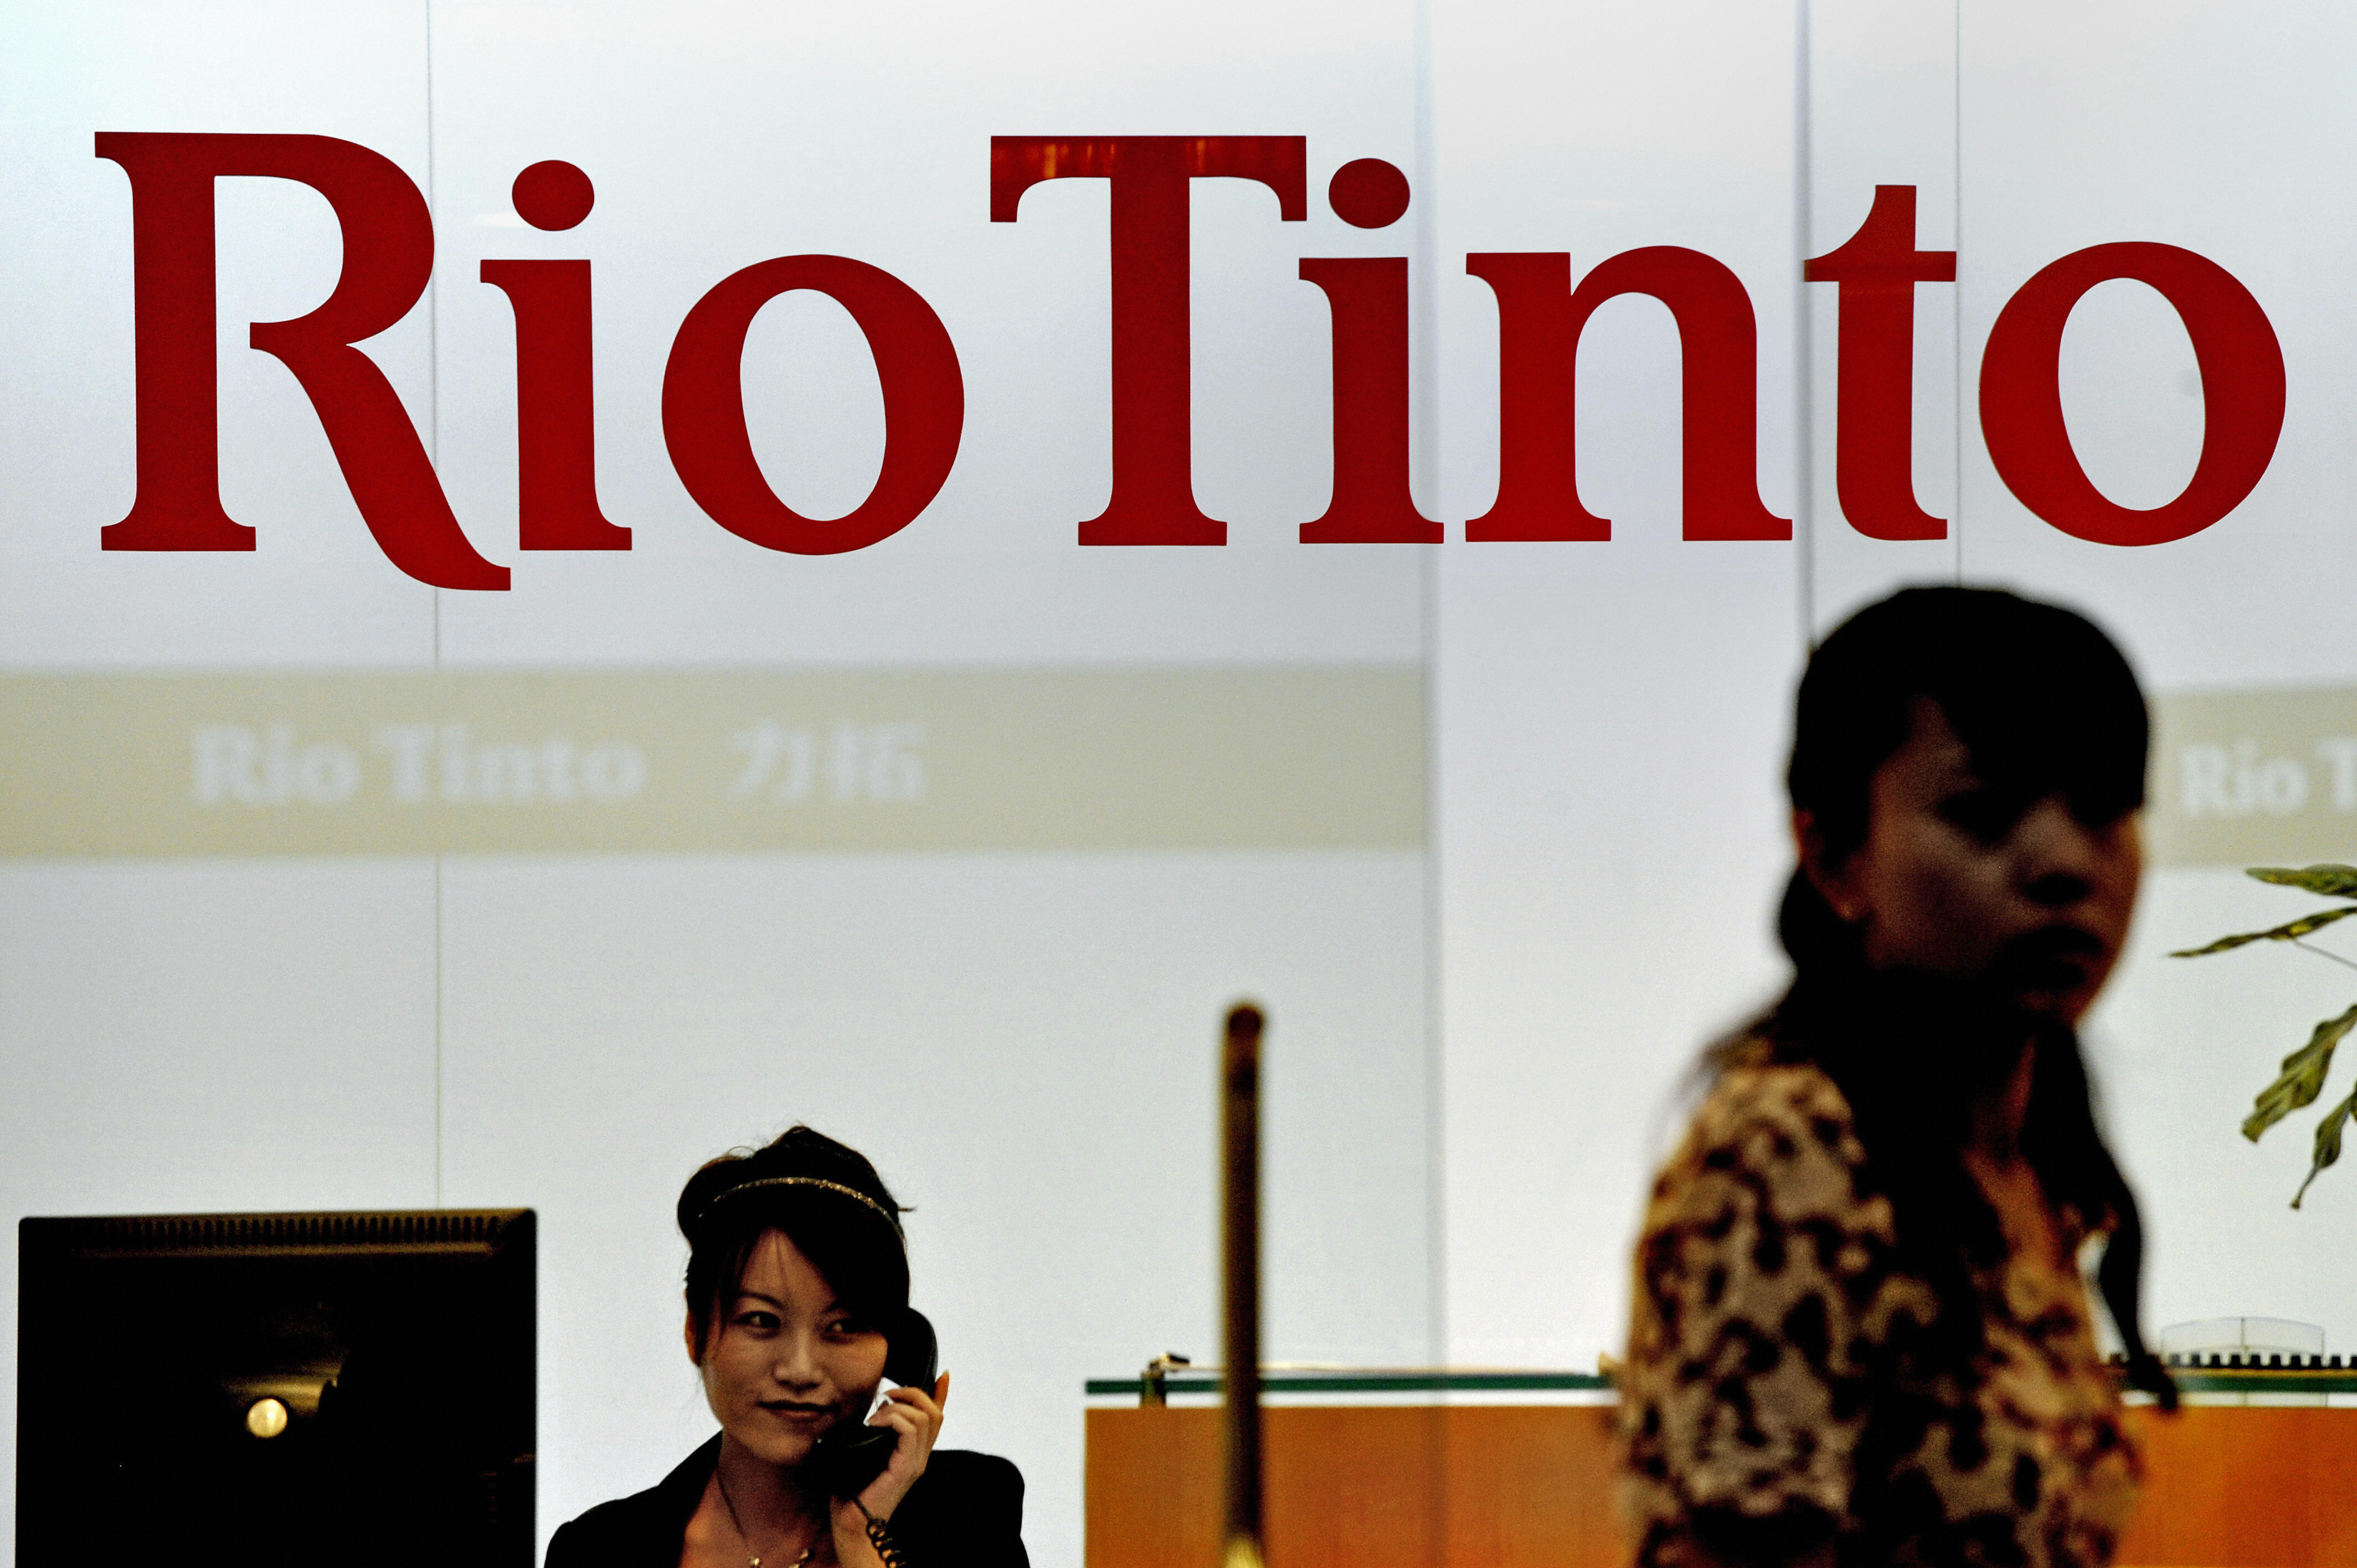 China says the Rio Tinto case will not affect the development of ties with Australia.